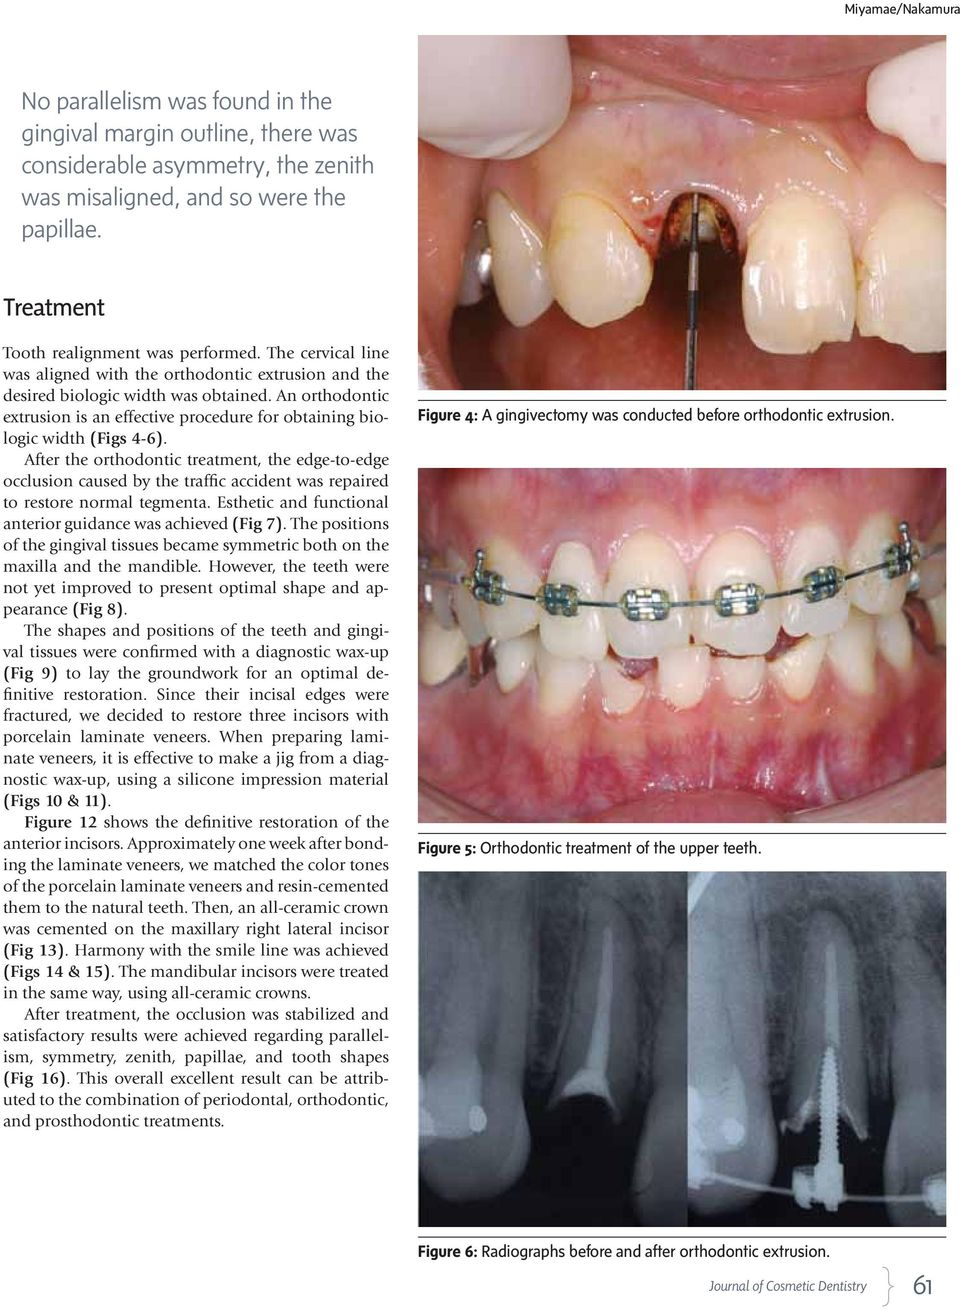 An orthodontic extrusion is an effective procedure for obtaining biologic width (Figs 4-6).